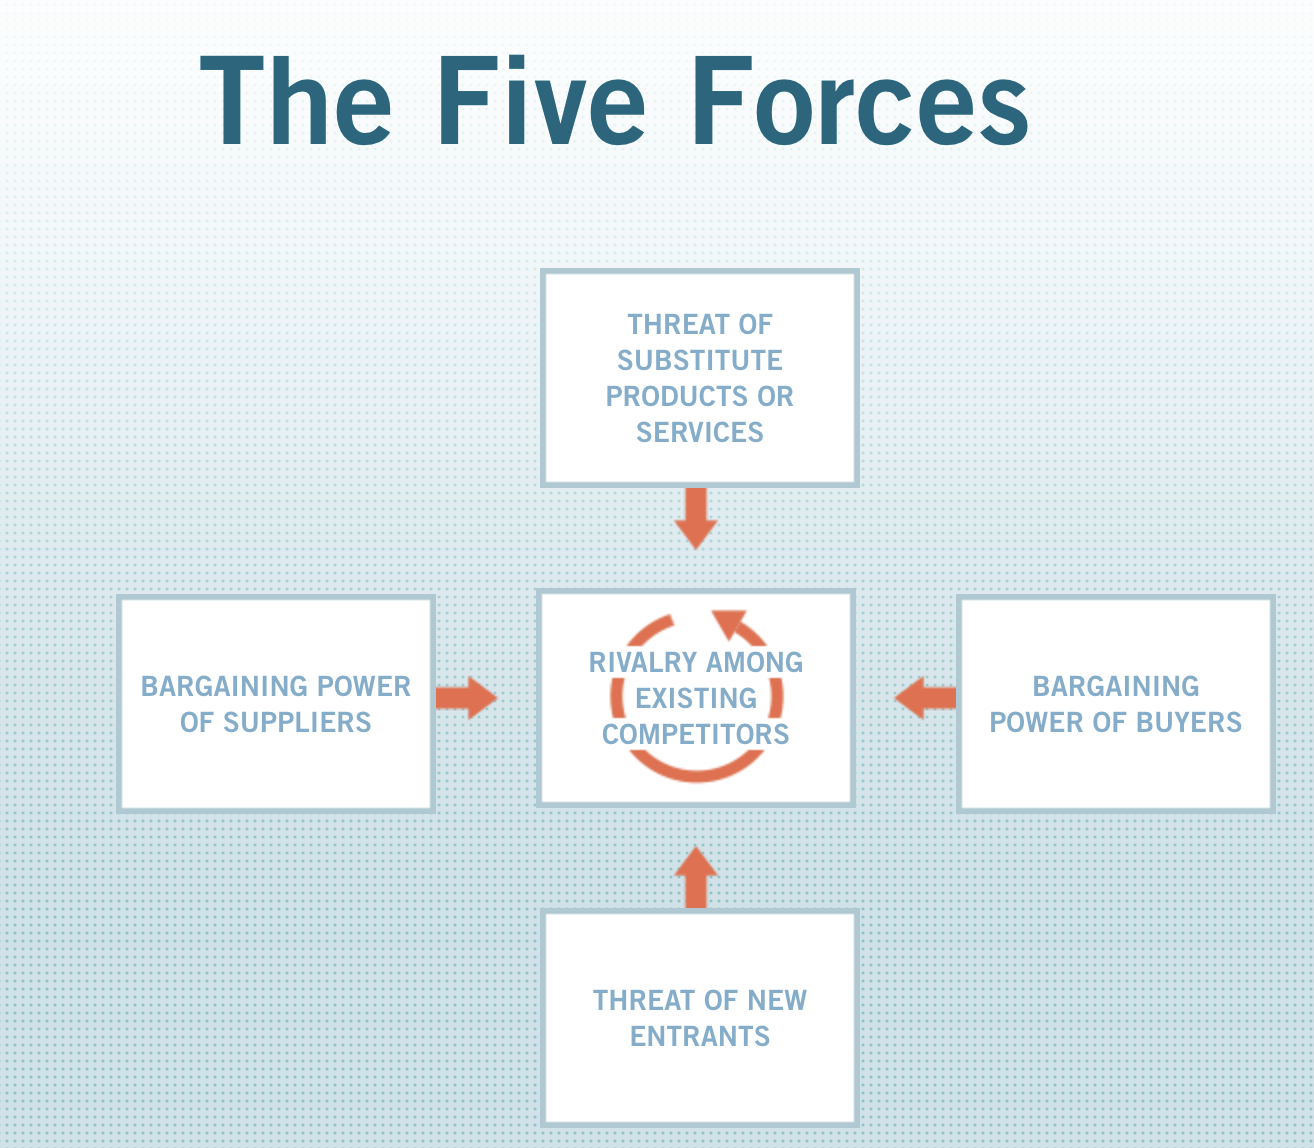 Porter's five forces image showing how buyers, supplyers, product substitutes, and new market entrants influence the product's market position